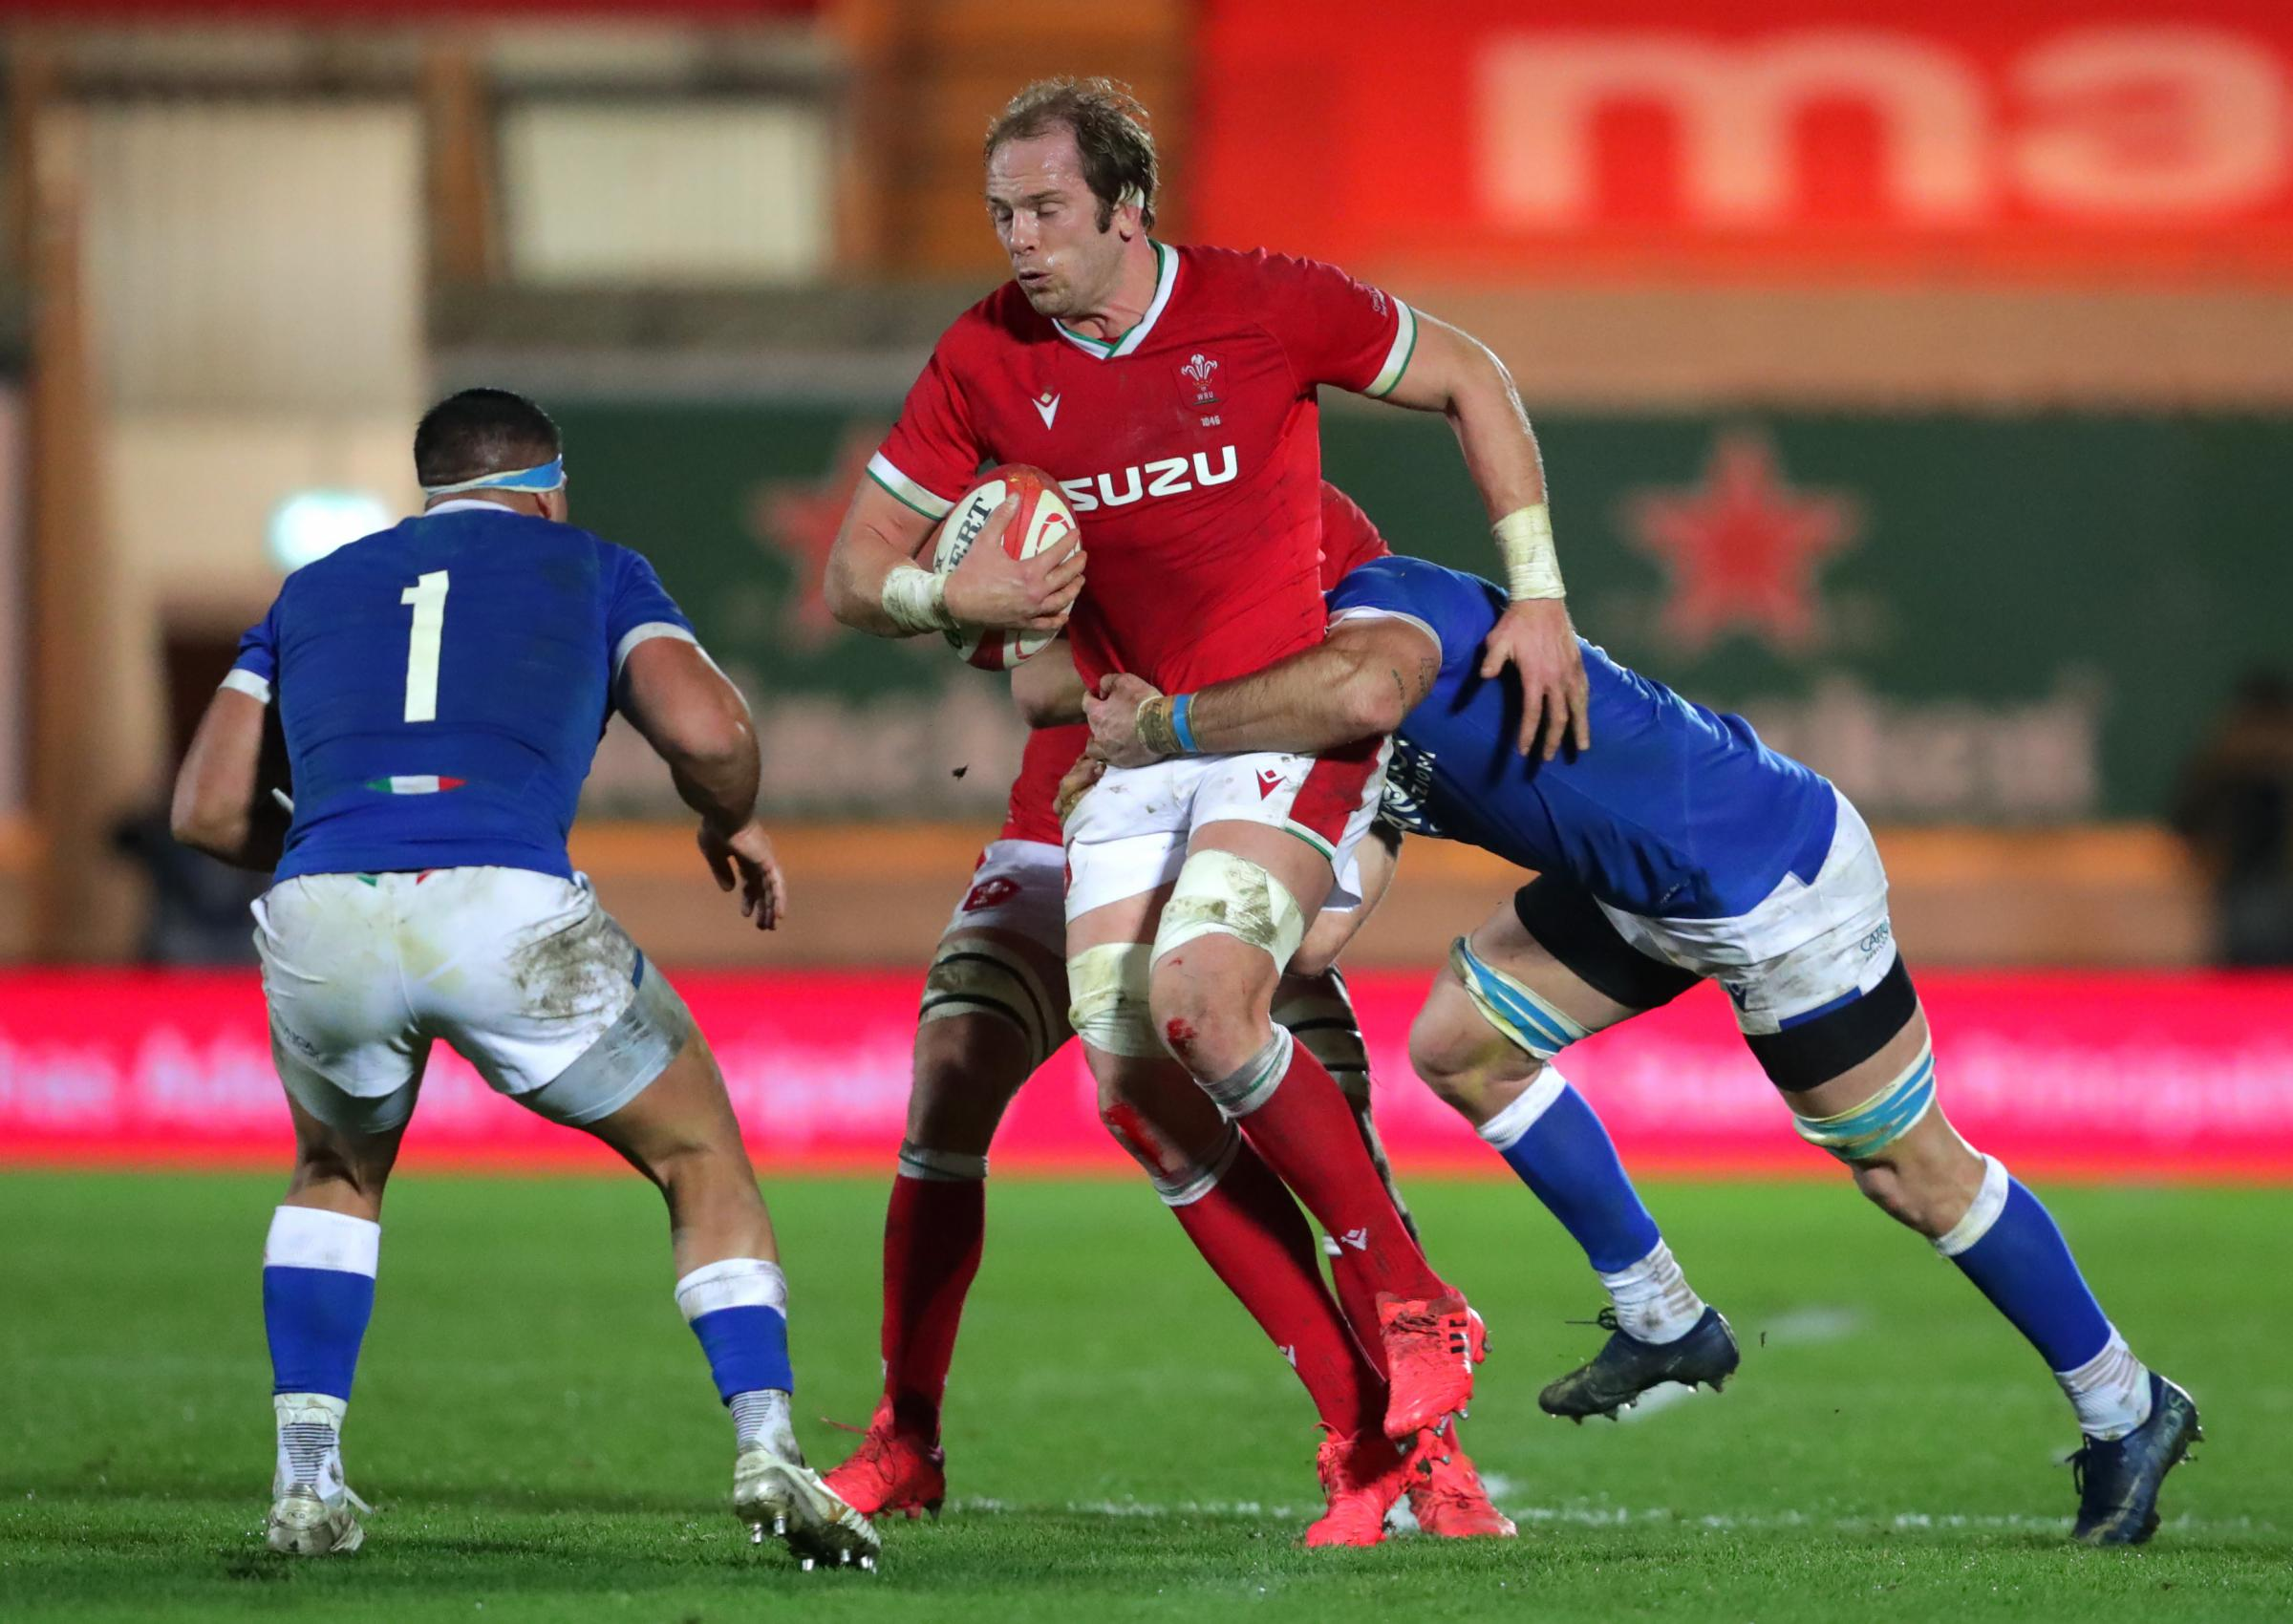 Wales Alun Wyn Jones tackled by Italys Braam Steyn during the Autumn Nations Cup match at Parc y Scarlets, Llanelli.